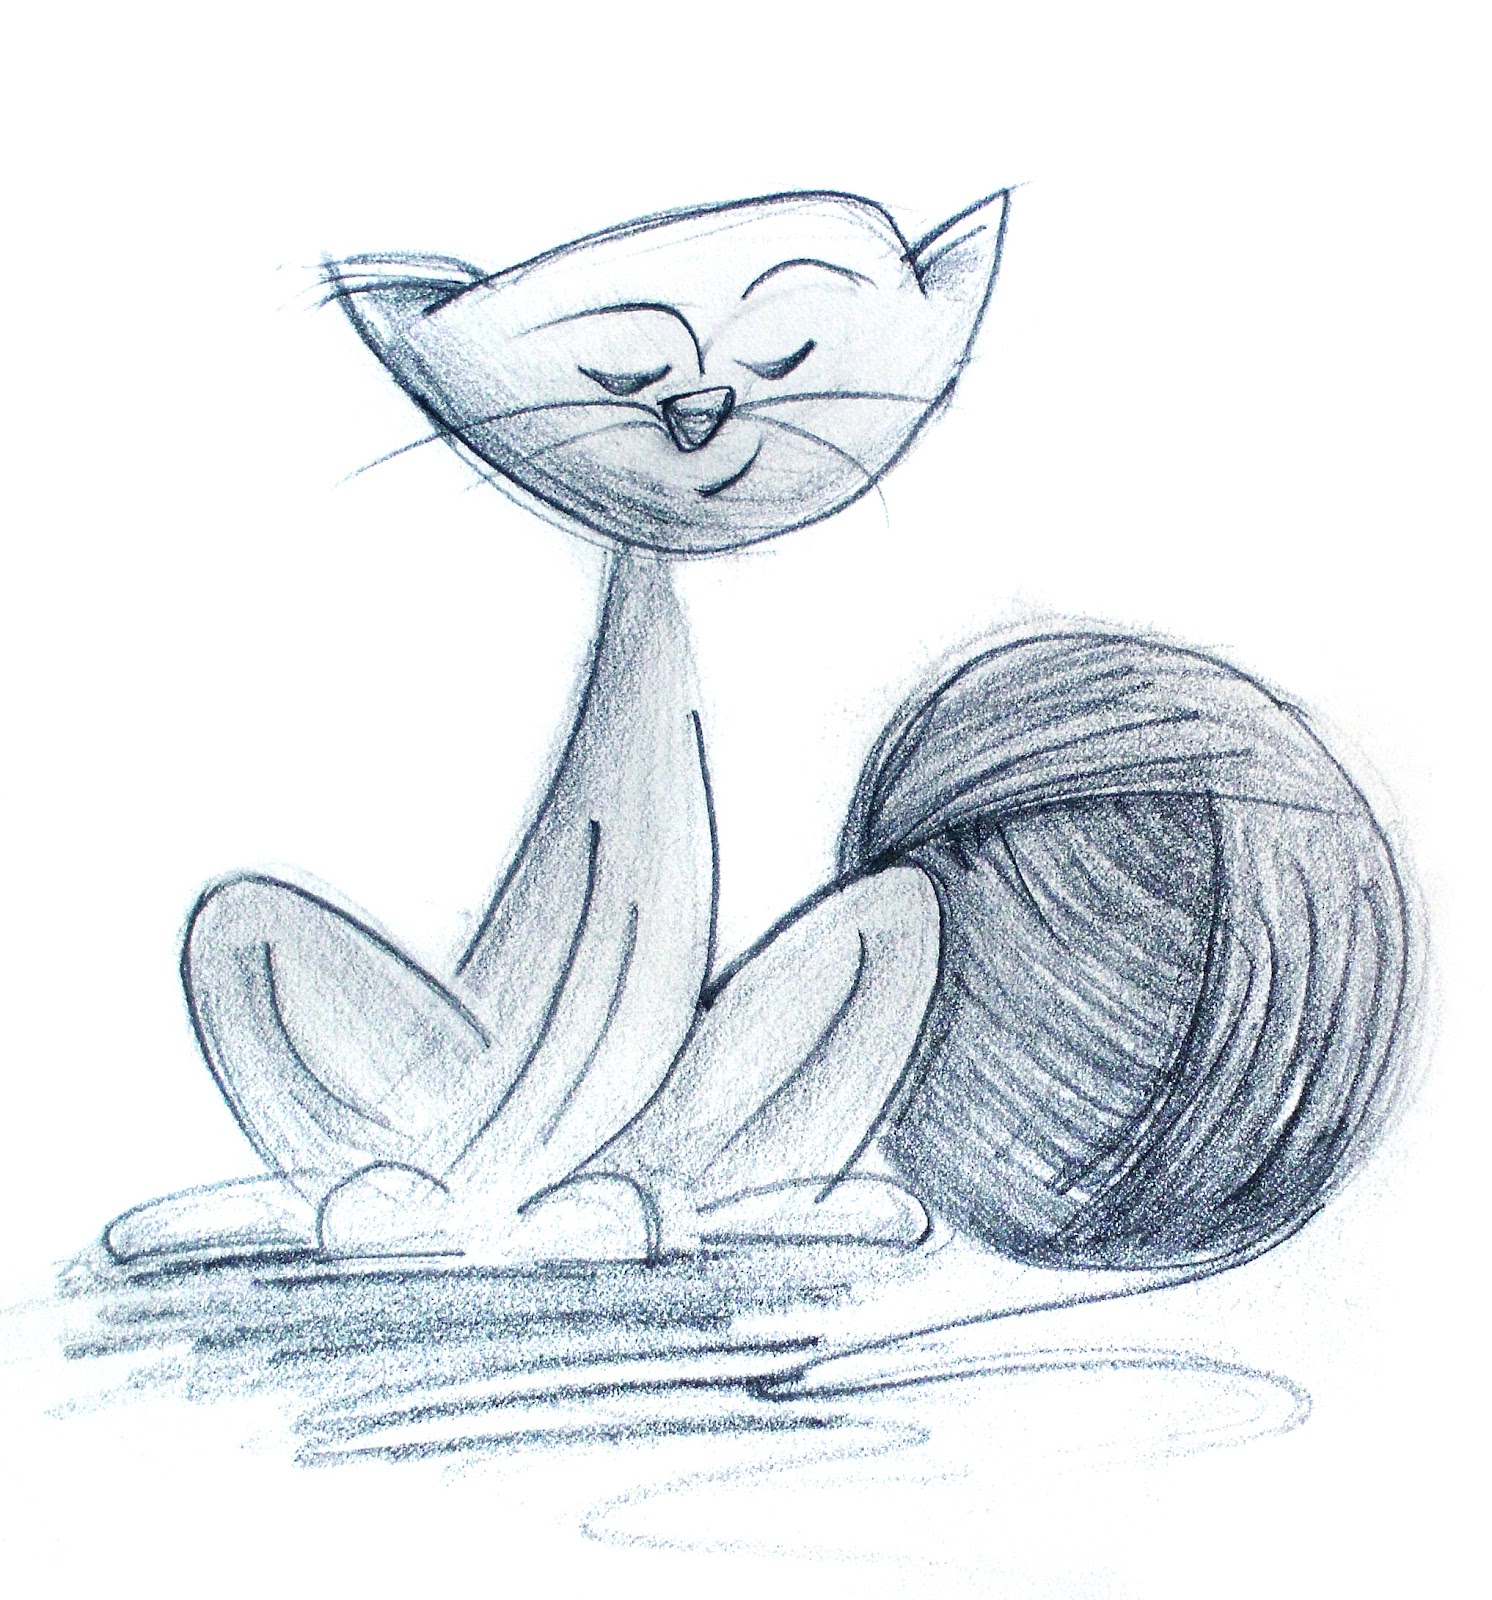 Line Drawing Yarn : The art of andy fling cat with yarn sketchbook